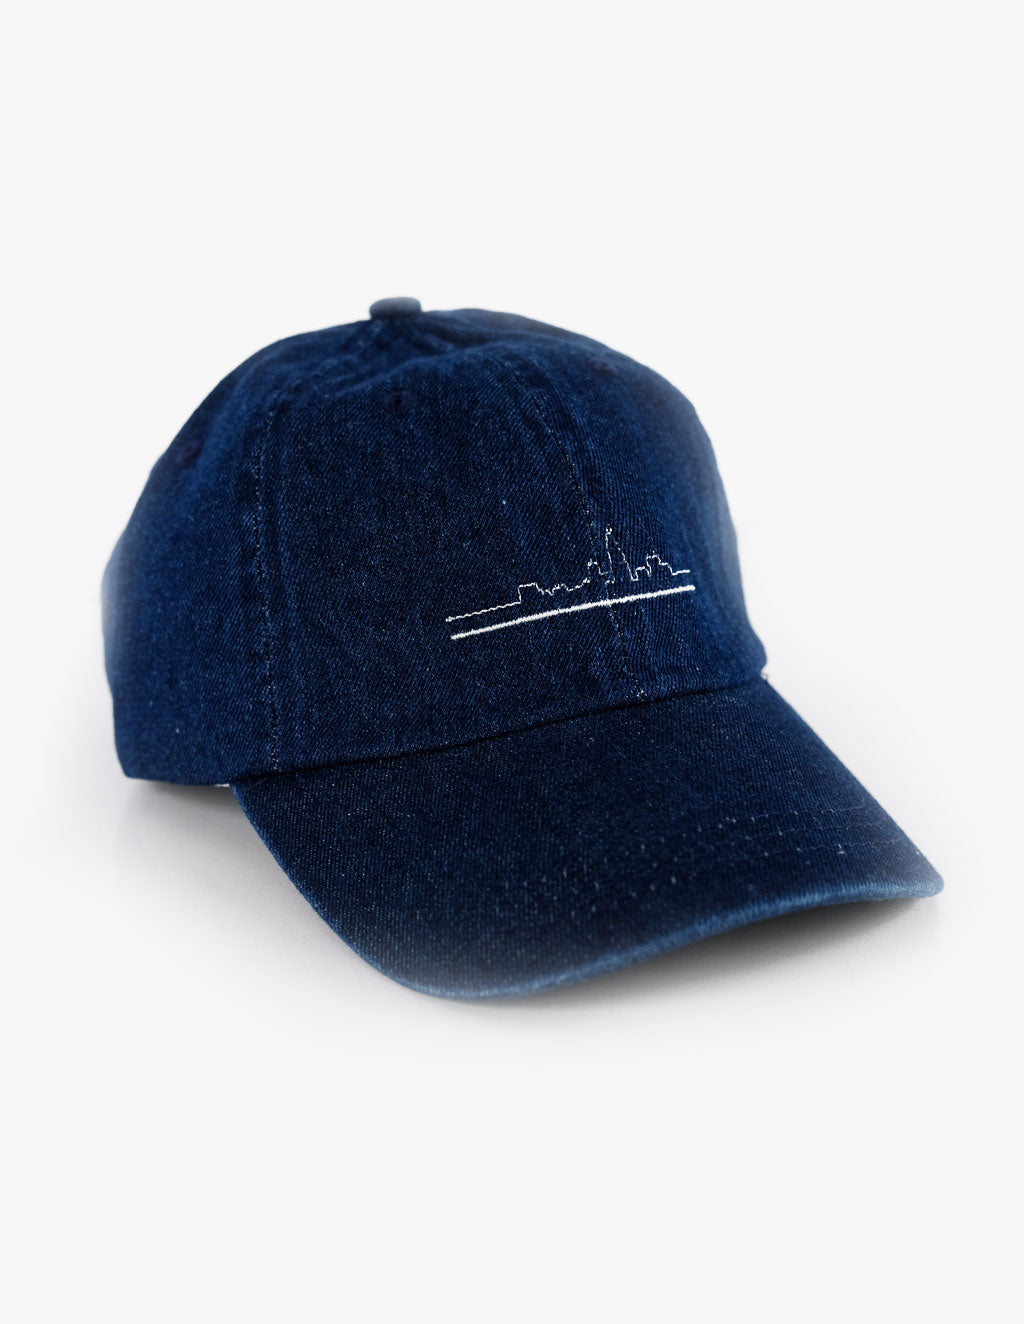 DARK WASH SKYLINE HAT